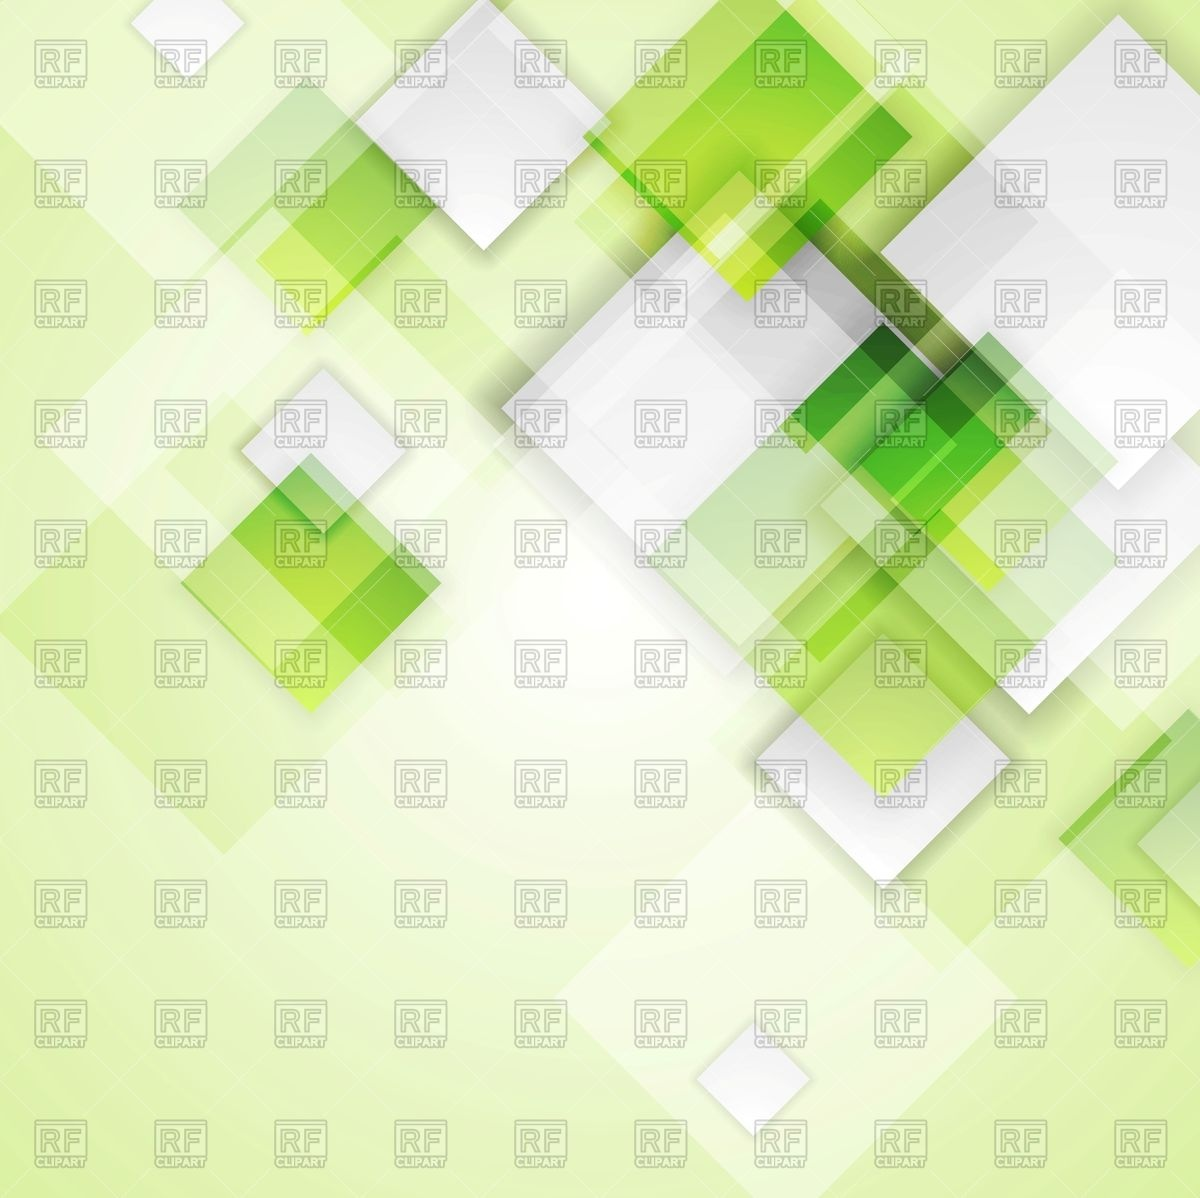 Light green abstract background with squares Vector Image #92154.